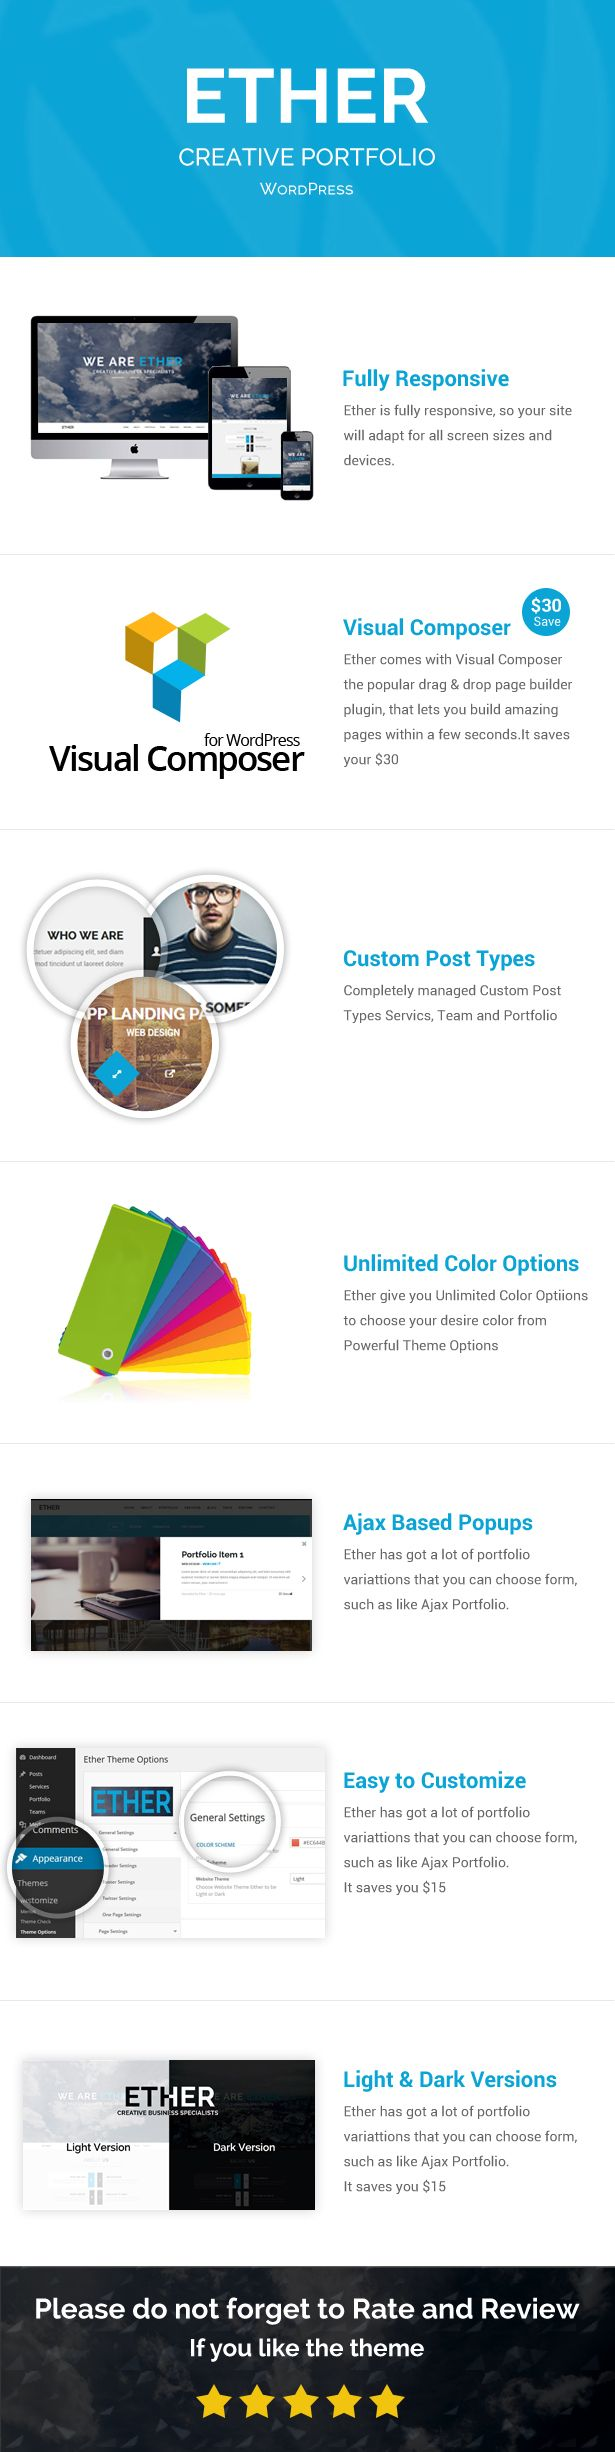 Ether Creative Business WordPress theme is a one page theme which comes in light and dark versions. It is a professionally developed theme which installs in less than 2 minutes. The famous page bu...